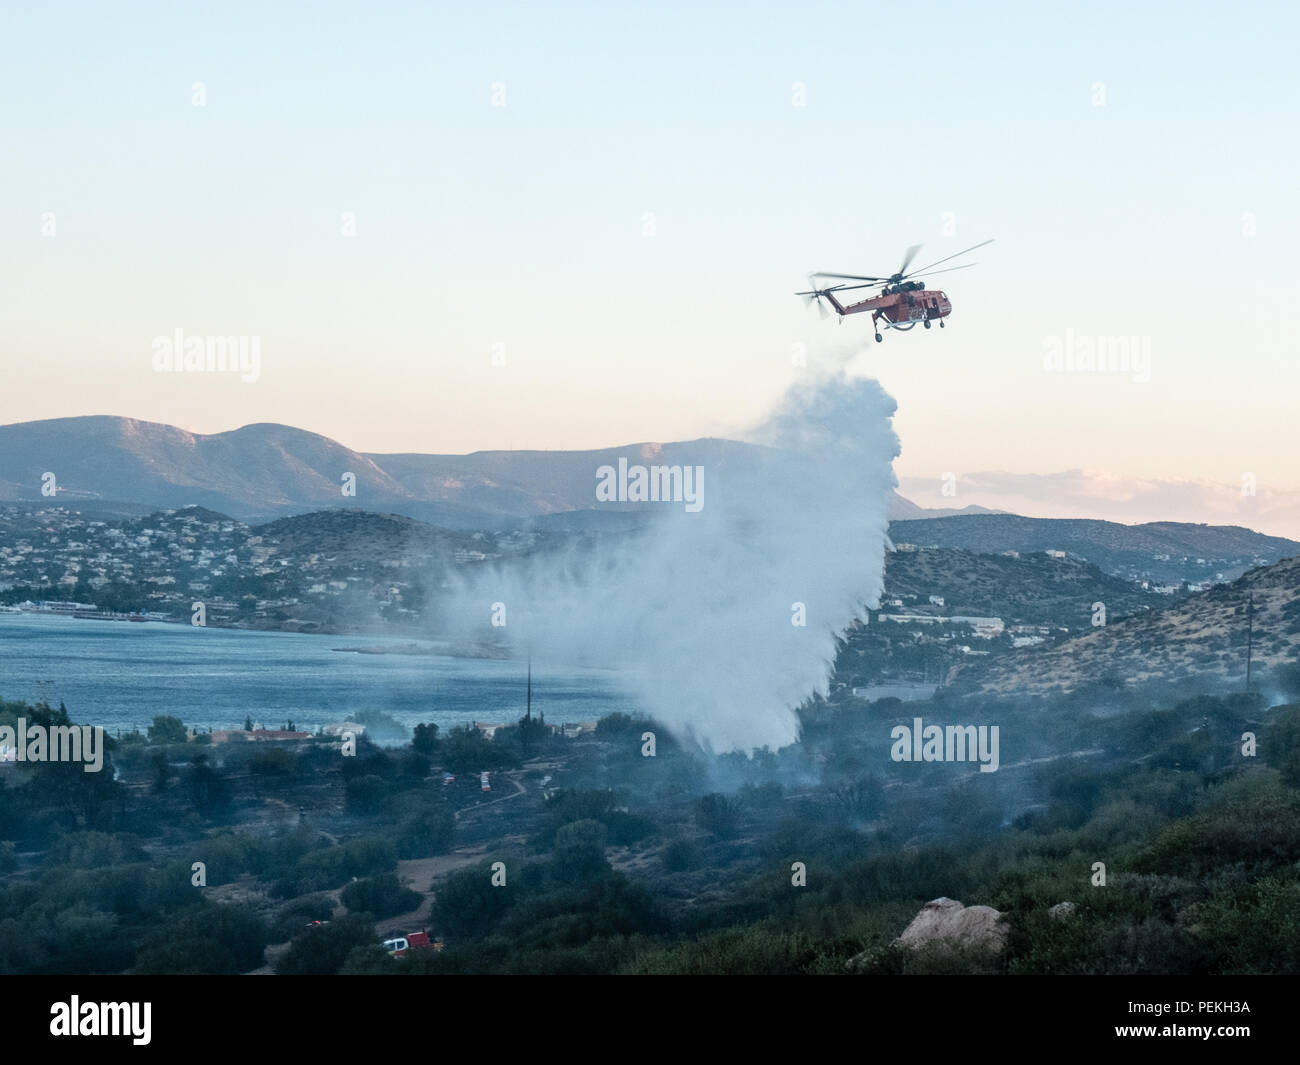 Fire emergency services helicopter spraying water preventing the fire from spreading further on the mountains. Saronida, East Attica, Greece, Europe. Stock Photo